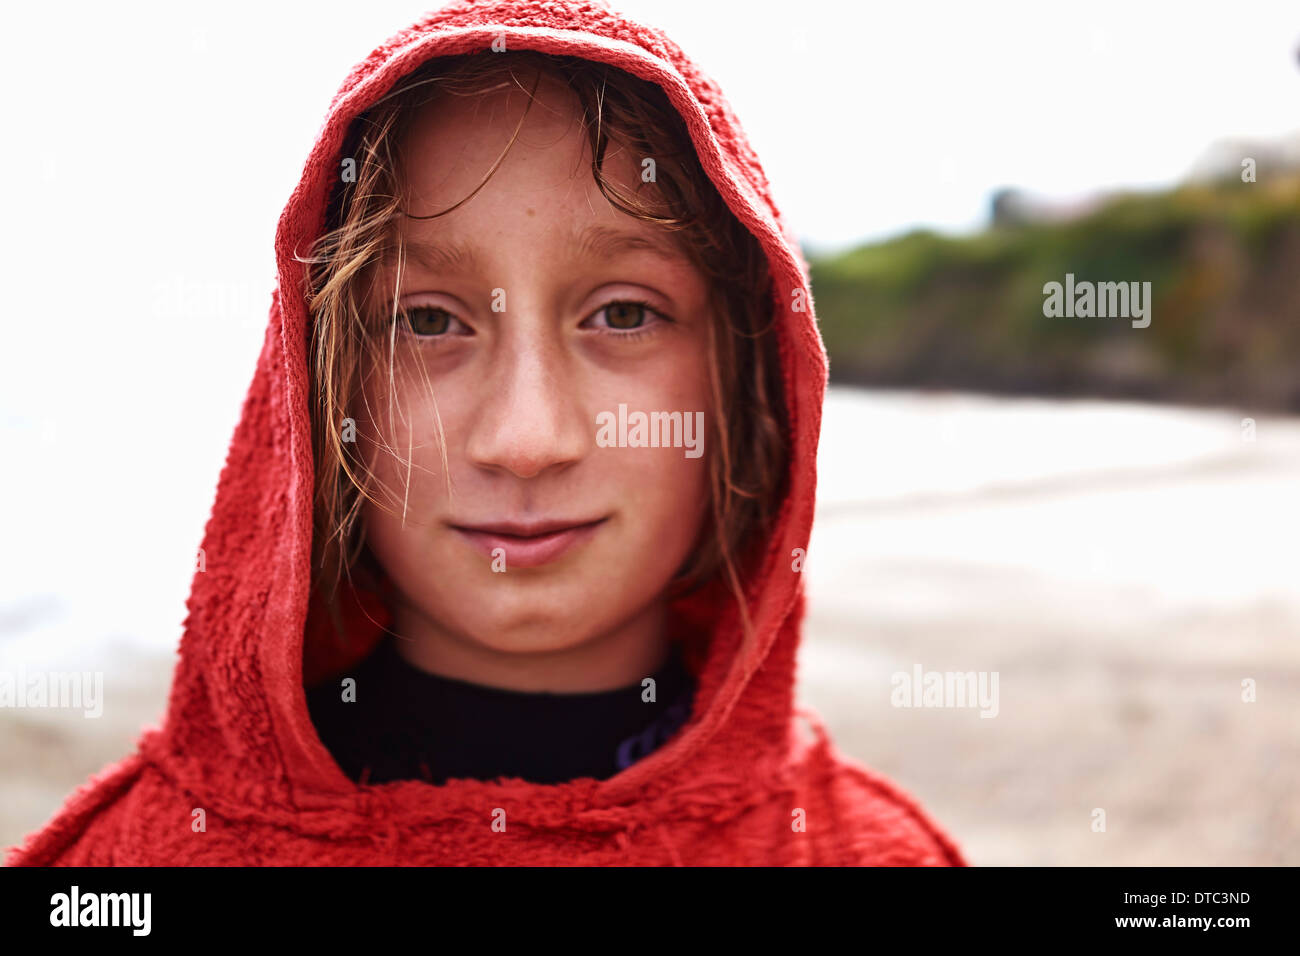 Portrait of girl in red hooded top - Stock Image